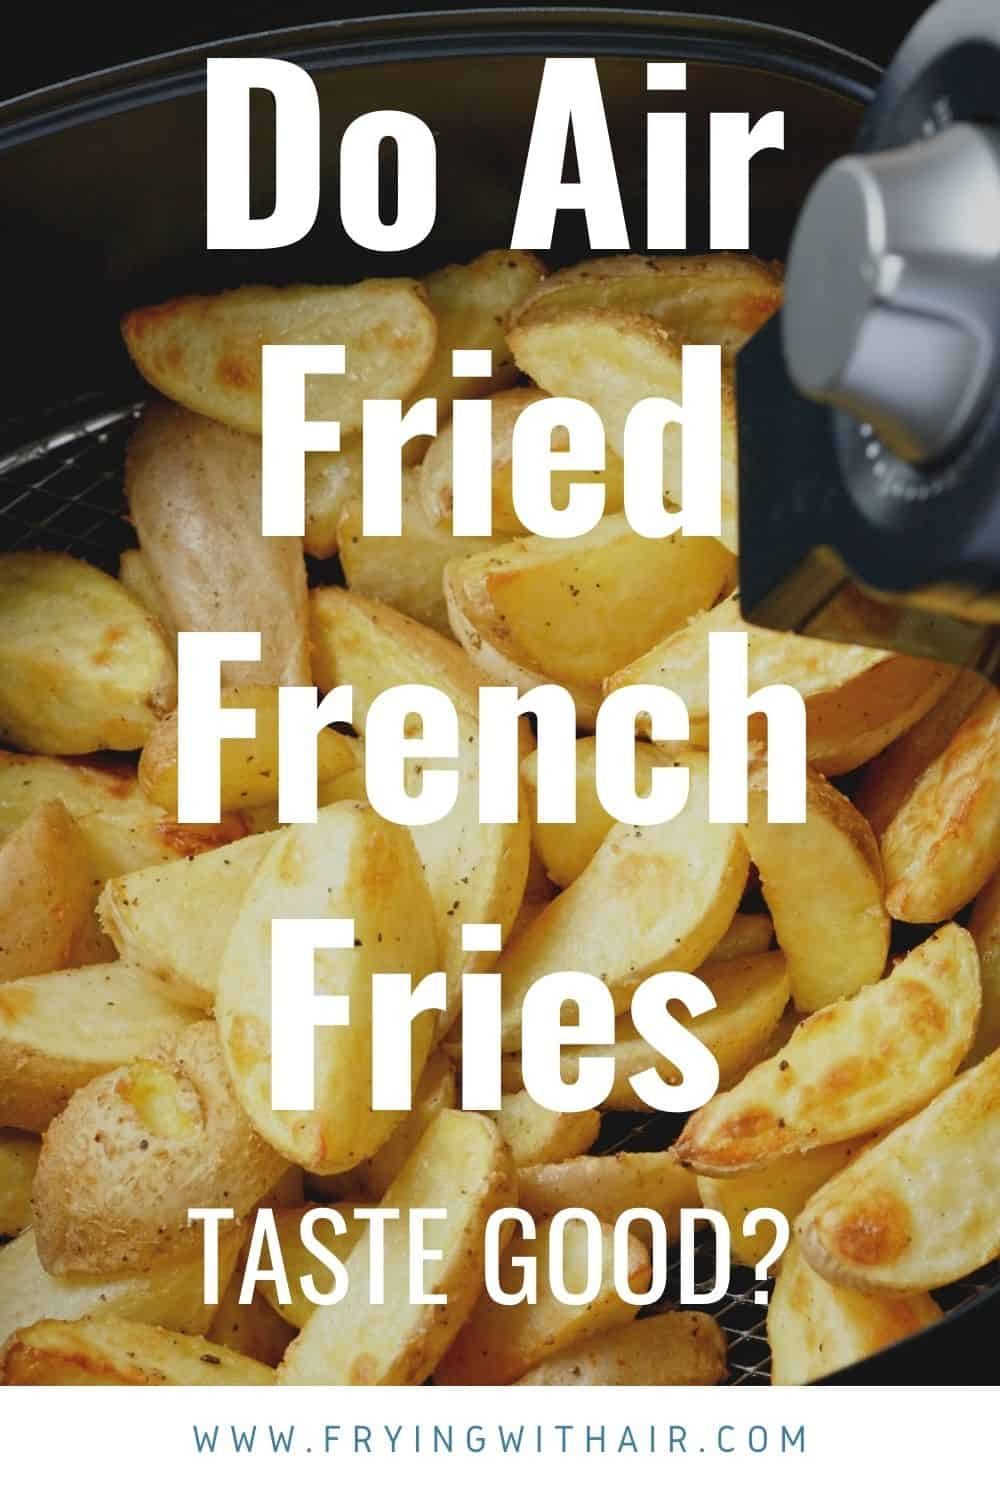 Do Air Fried French Fries Taste Good (1)